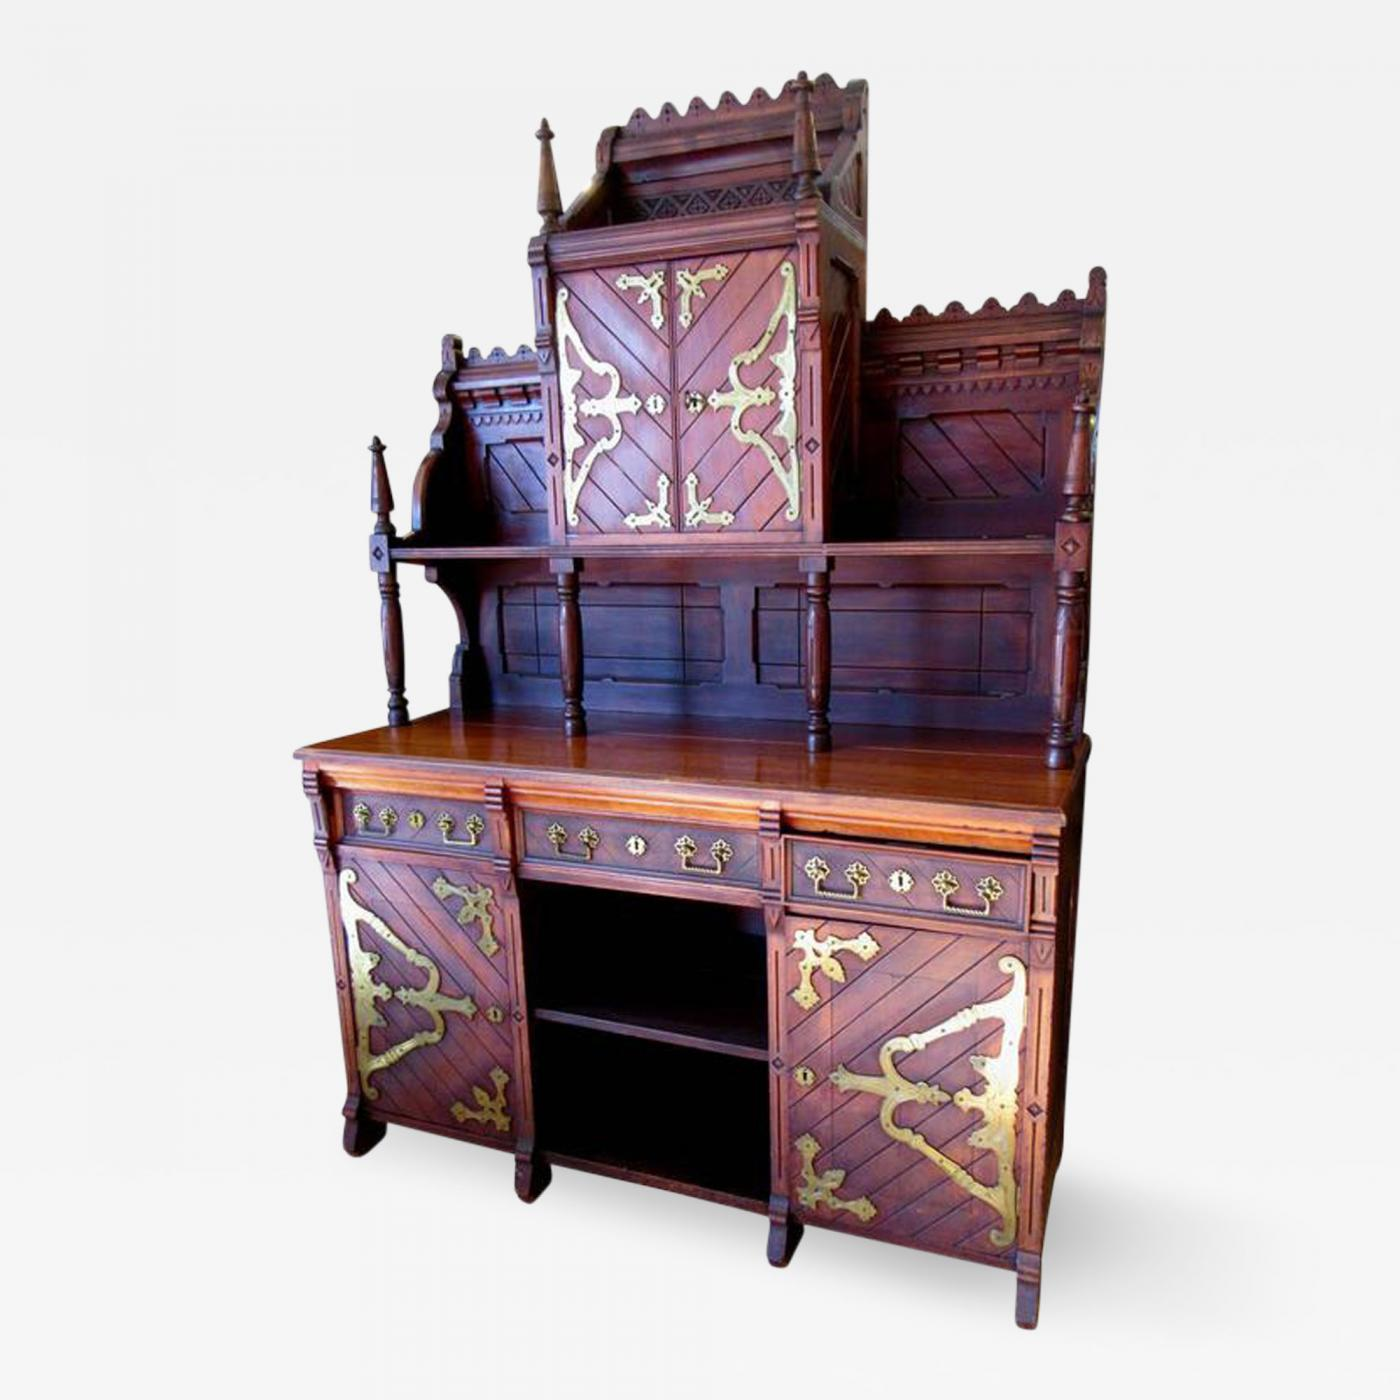 E Edwards Ficken Victorian Gothic Revival Buffet in the